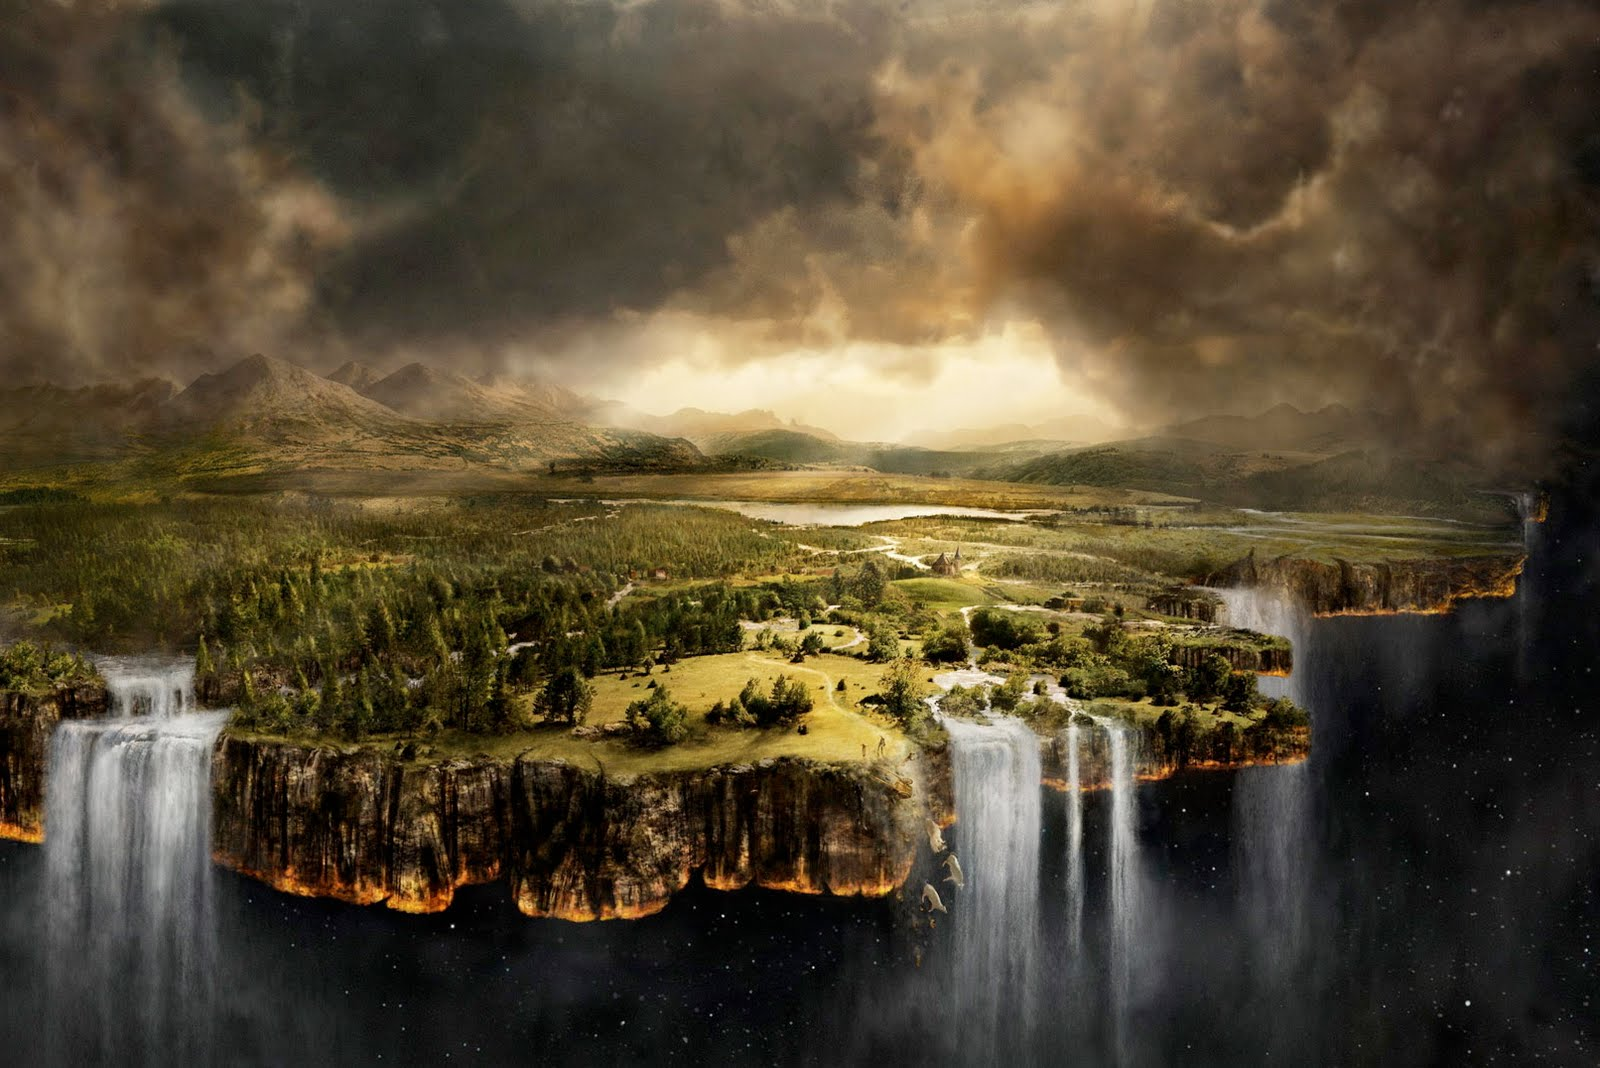 Fantasy 3d nature wallpaper for 3d wallpapers for home wall in pakistan